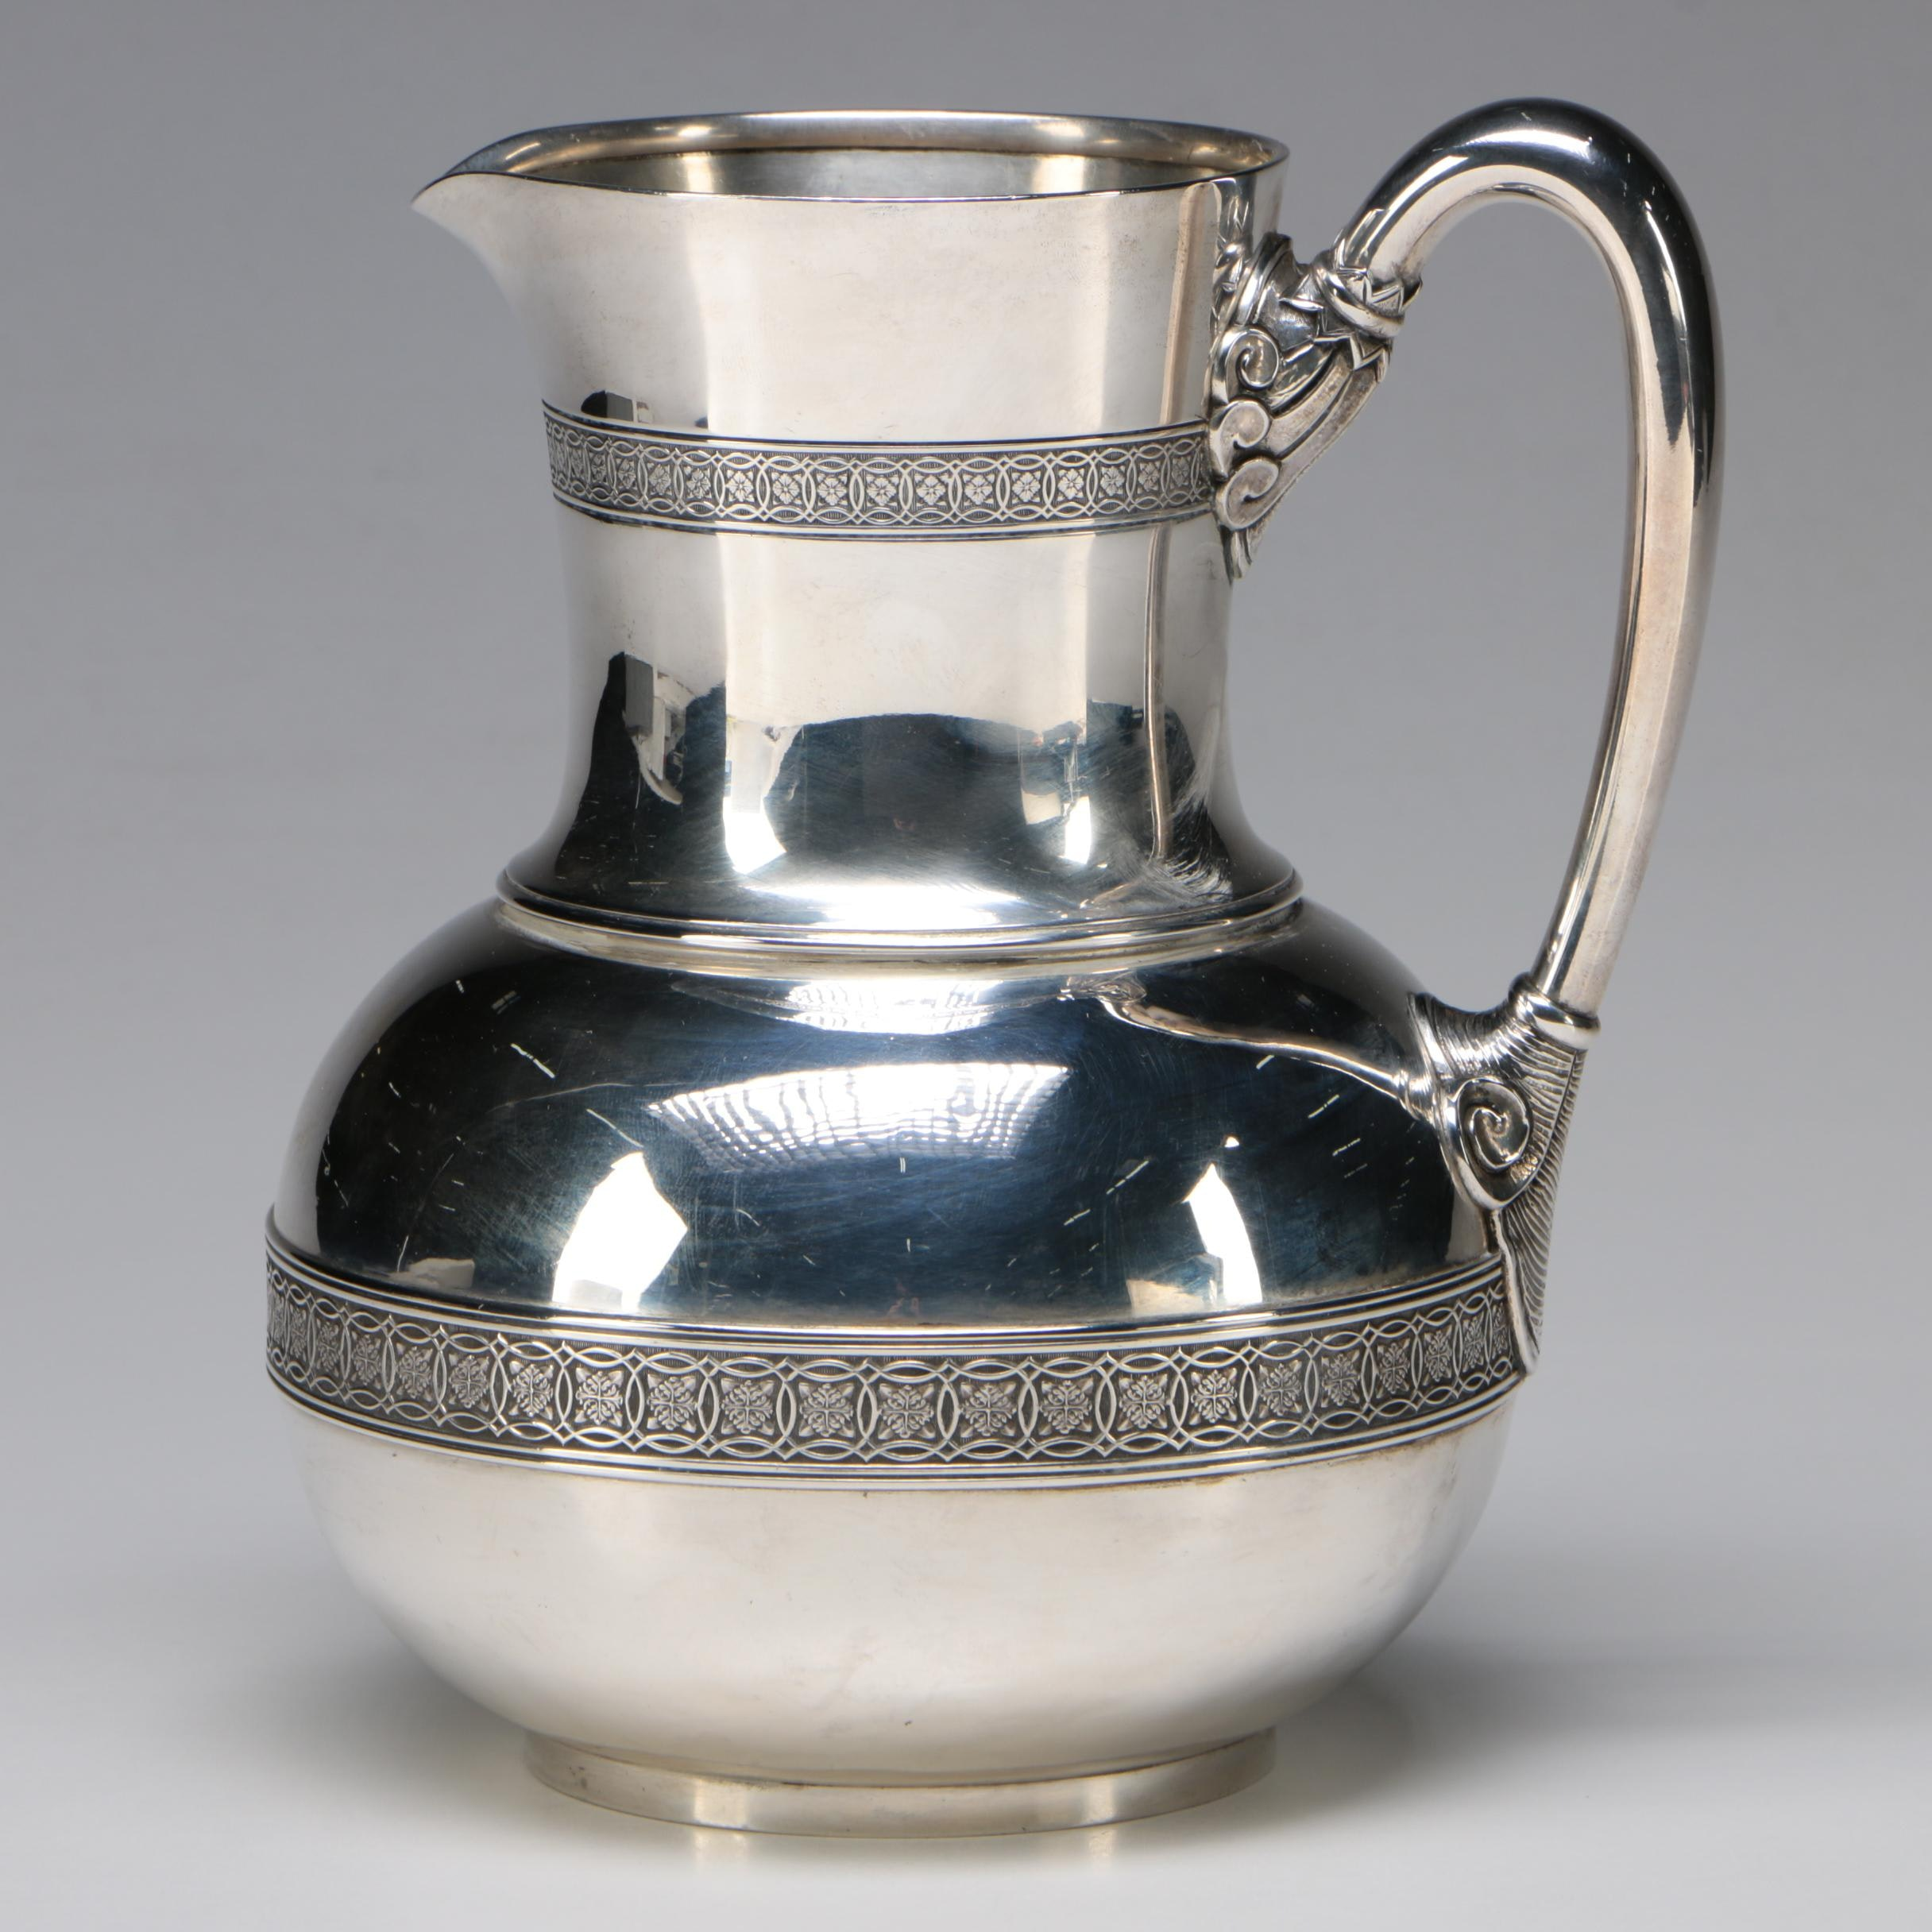 Tiffany & Co. Sterling Silver Water Pitcher, 1865-1869